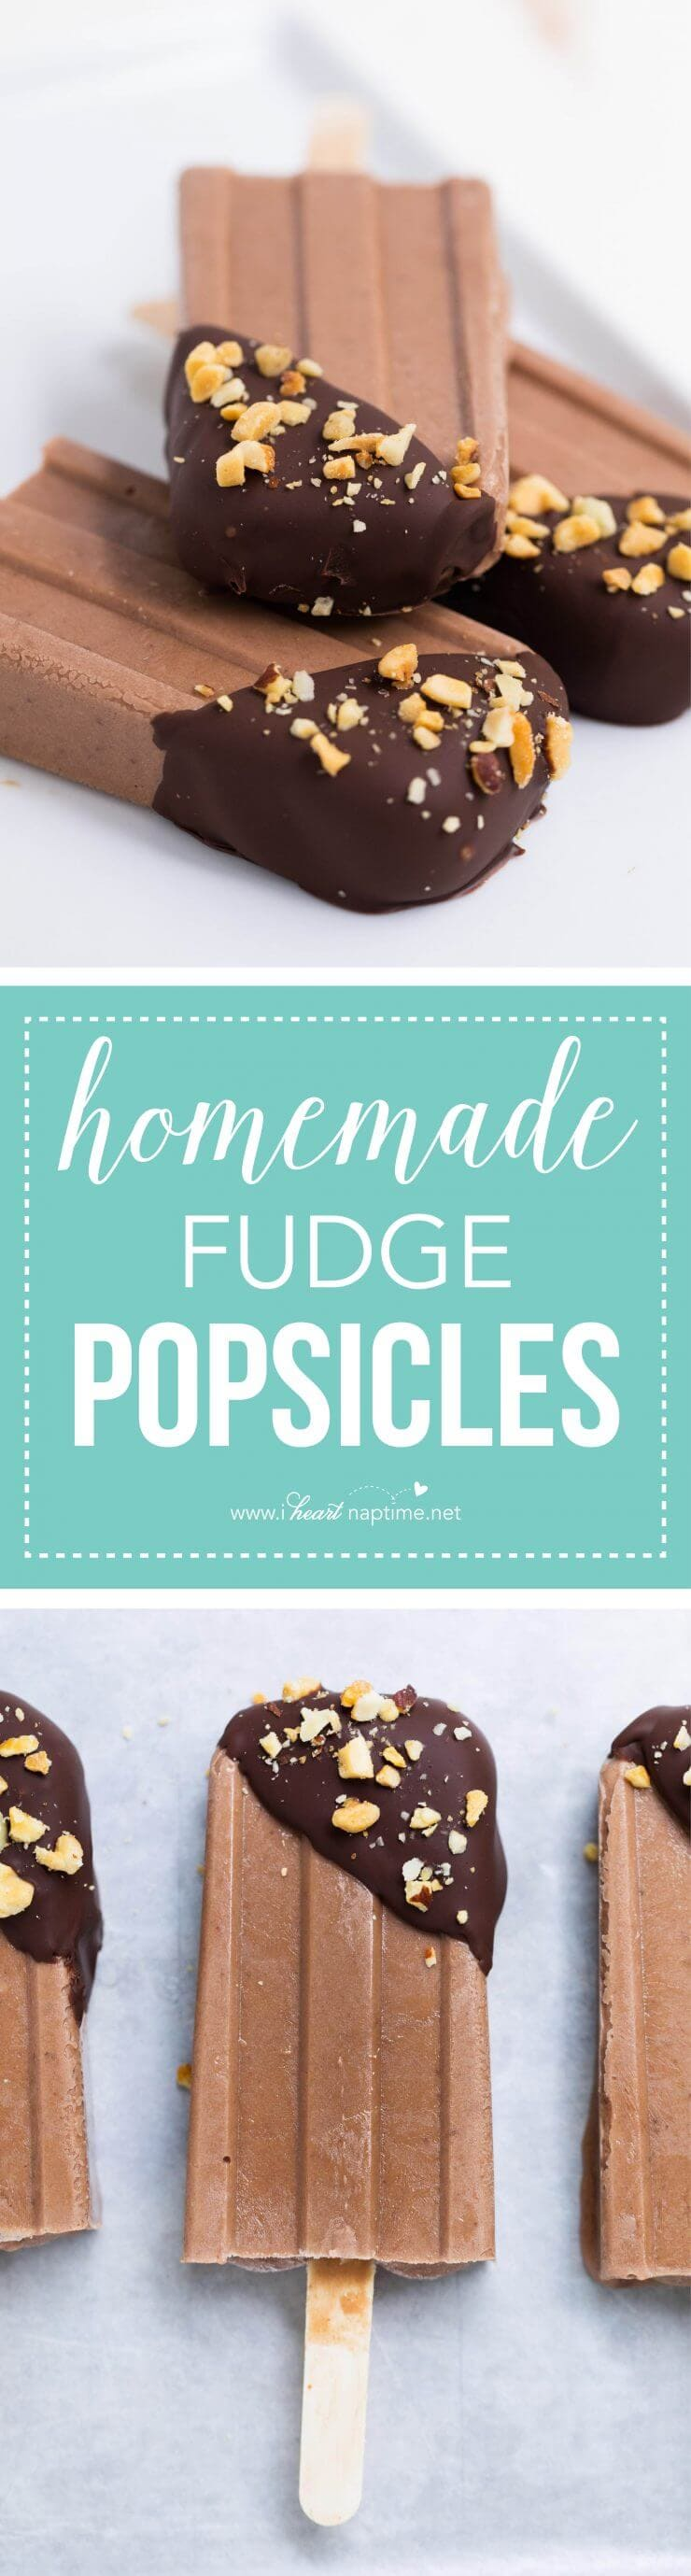 Easy homemade fudge popsicles -made with only 5 ingredients! Super creamy and delicious.